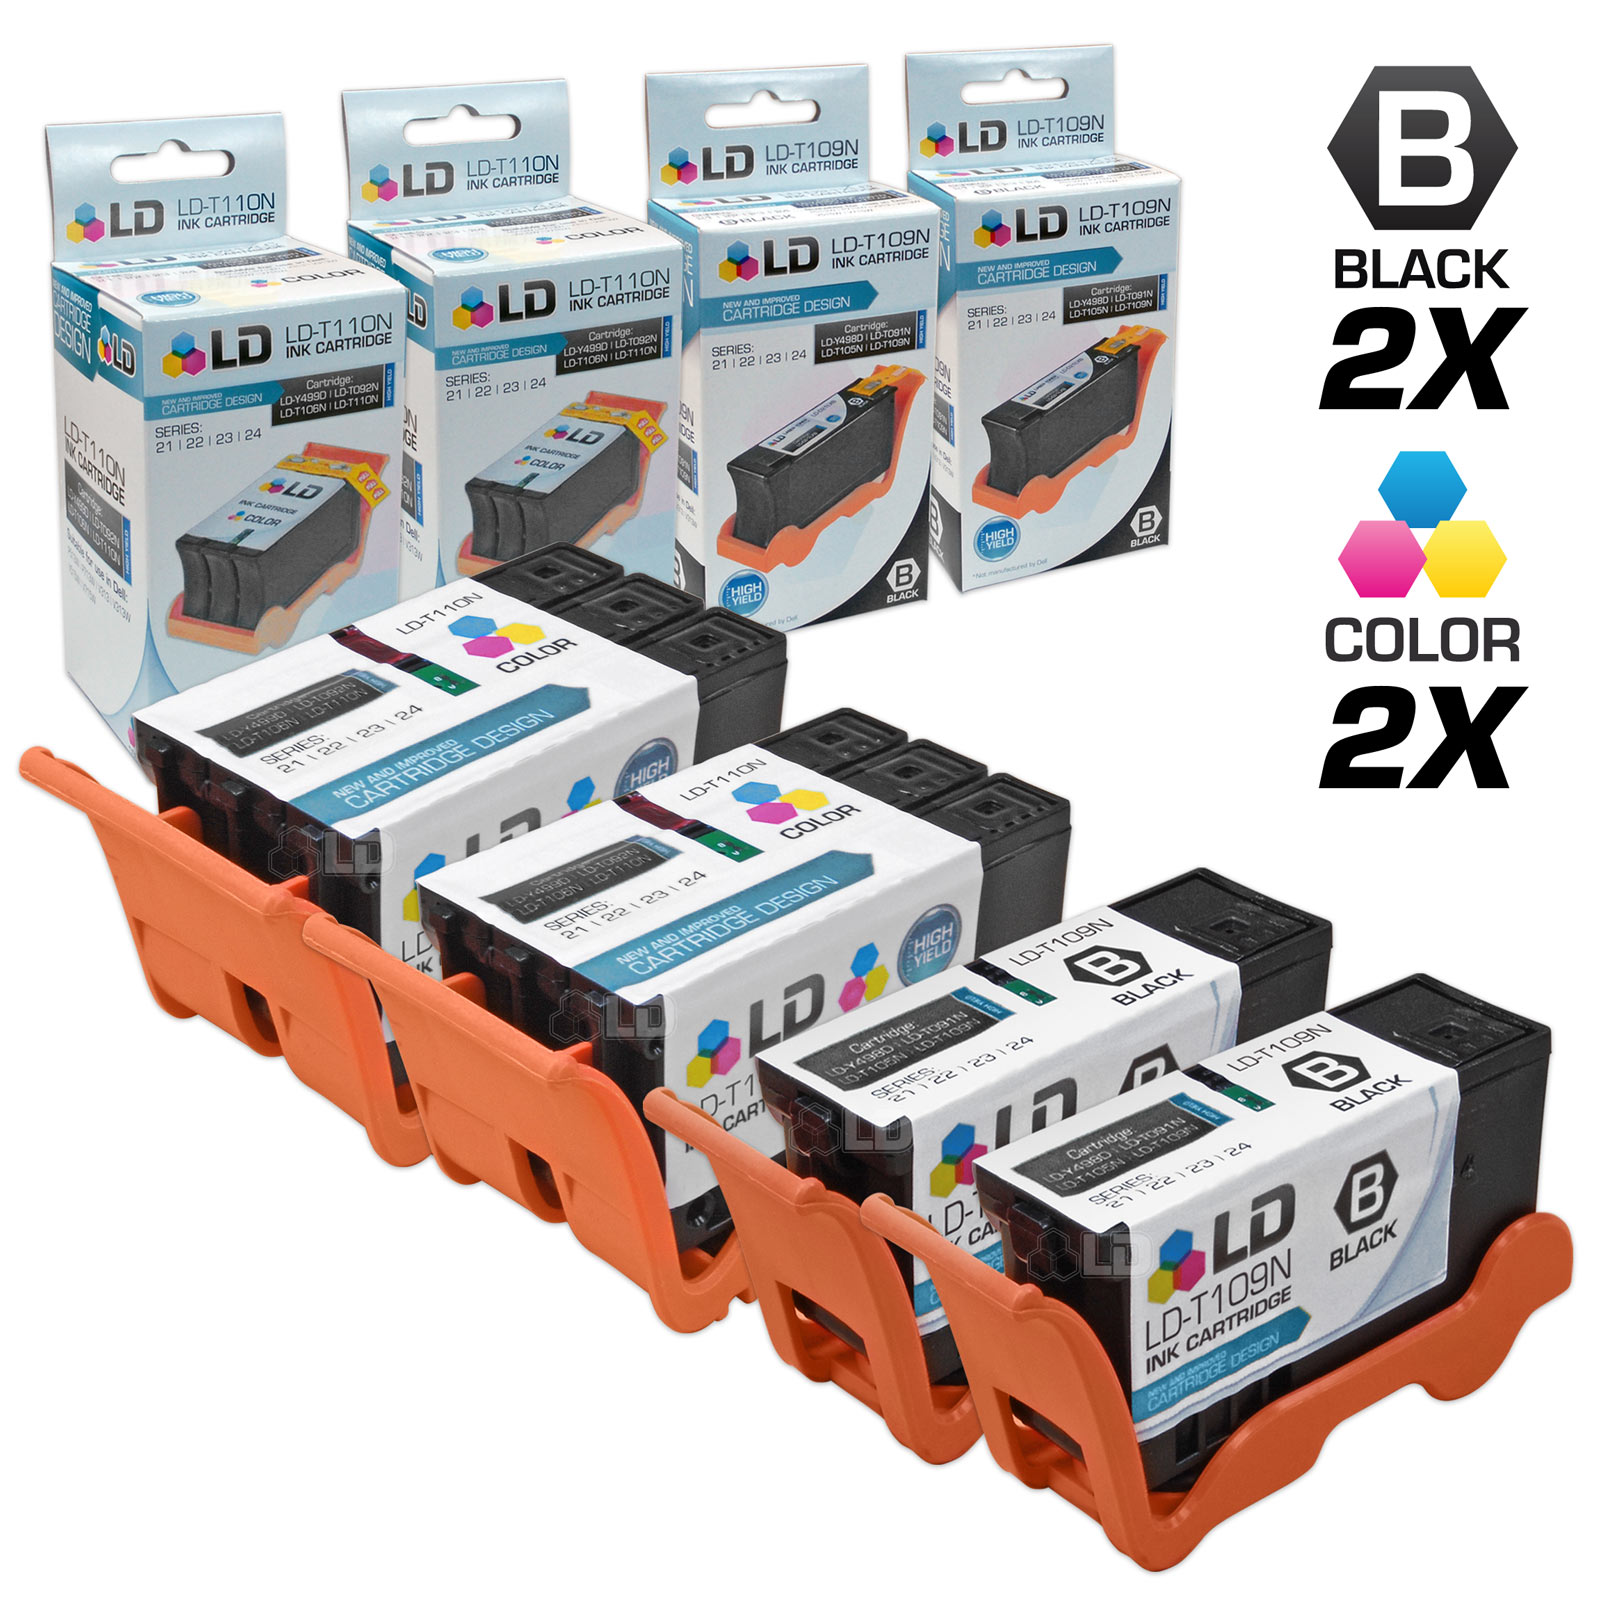 ReInkMe Remanufactured T702XL220 Cyan Ink Cartridge for Epson WF-3730 WF-3720